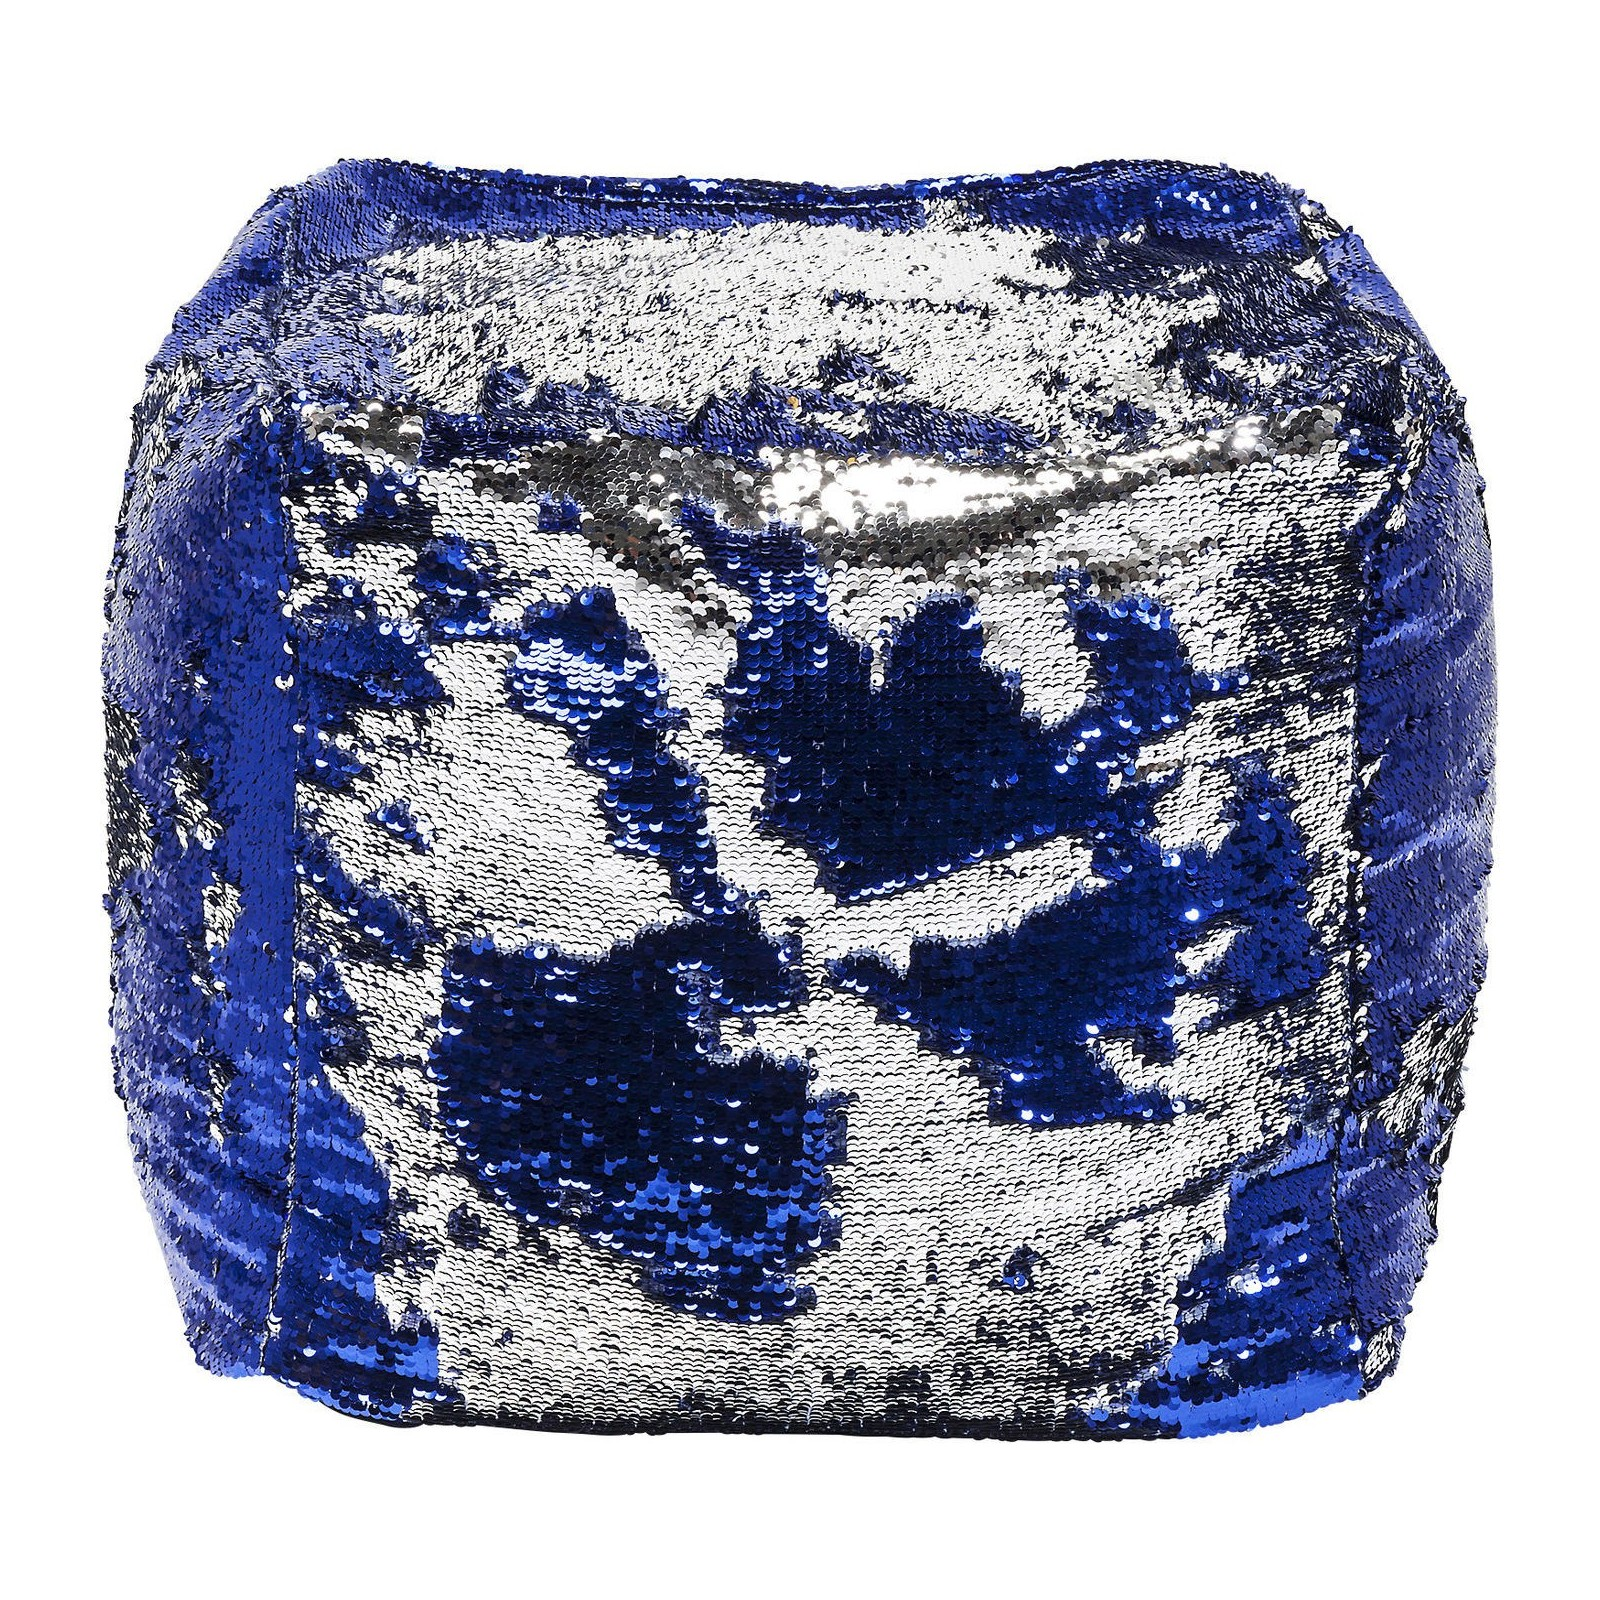 pouf disco queen bleu et argent 45x45cm kare design. Black Bedroom Furniture Sets. Home Design Ideas